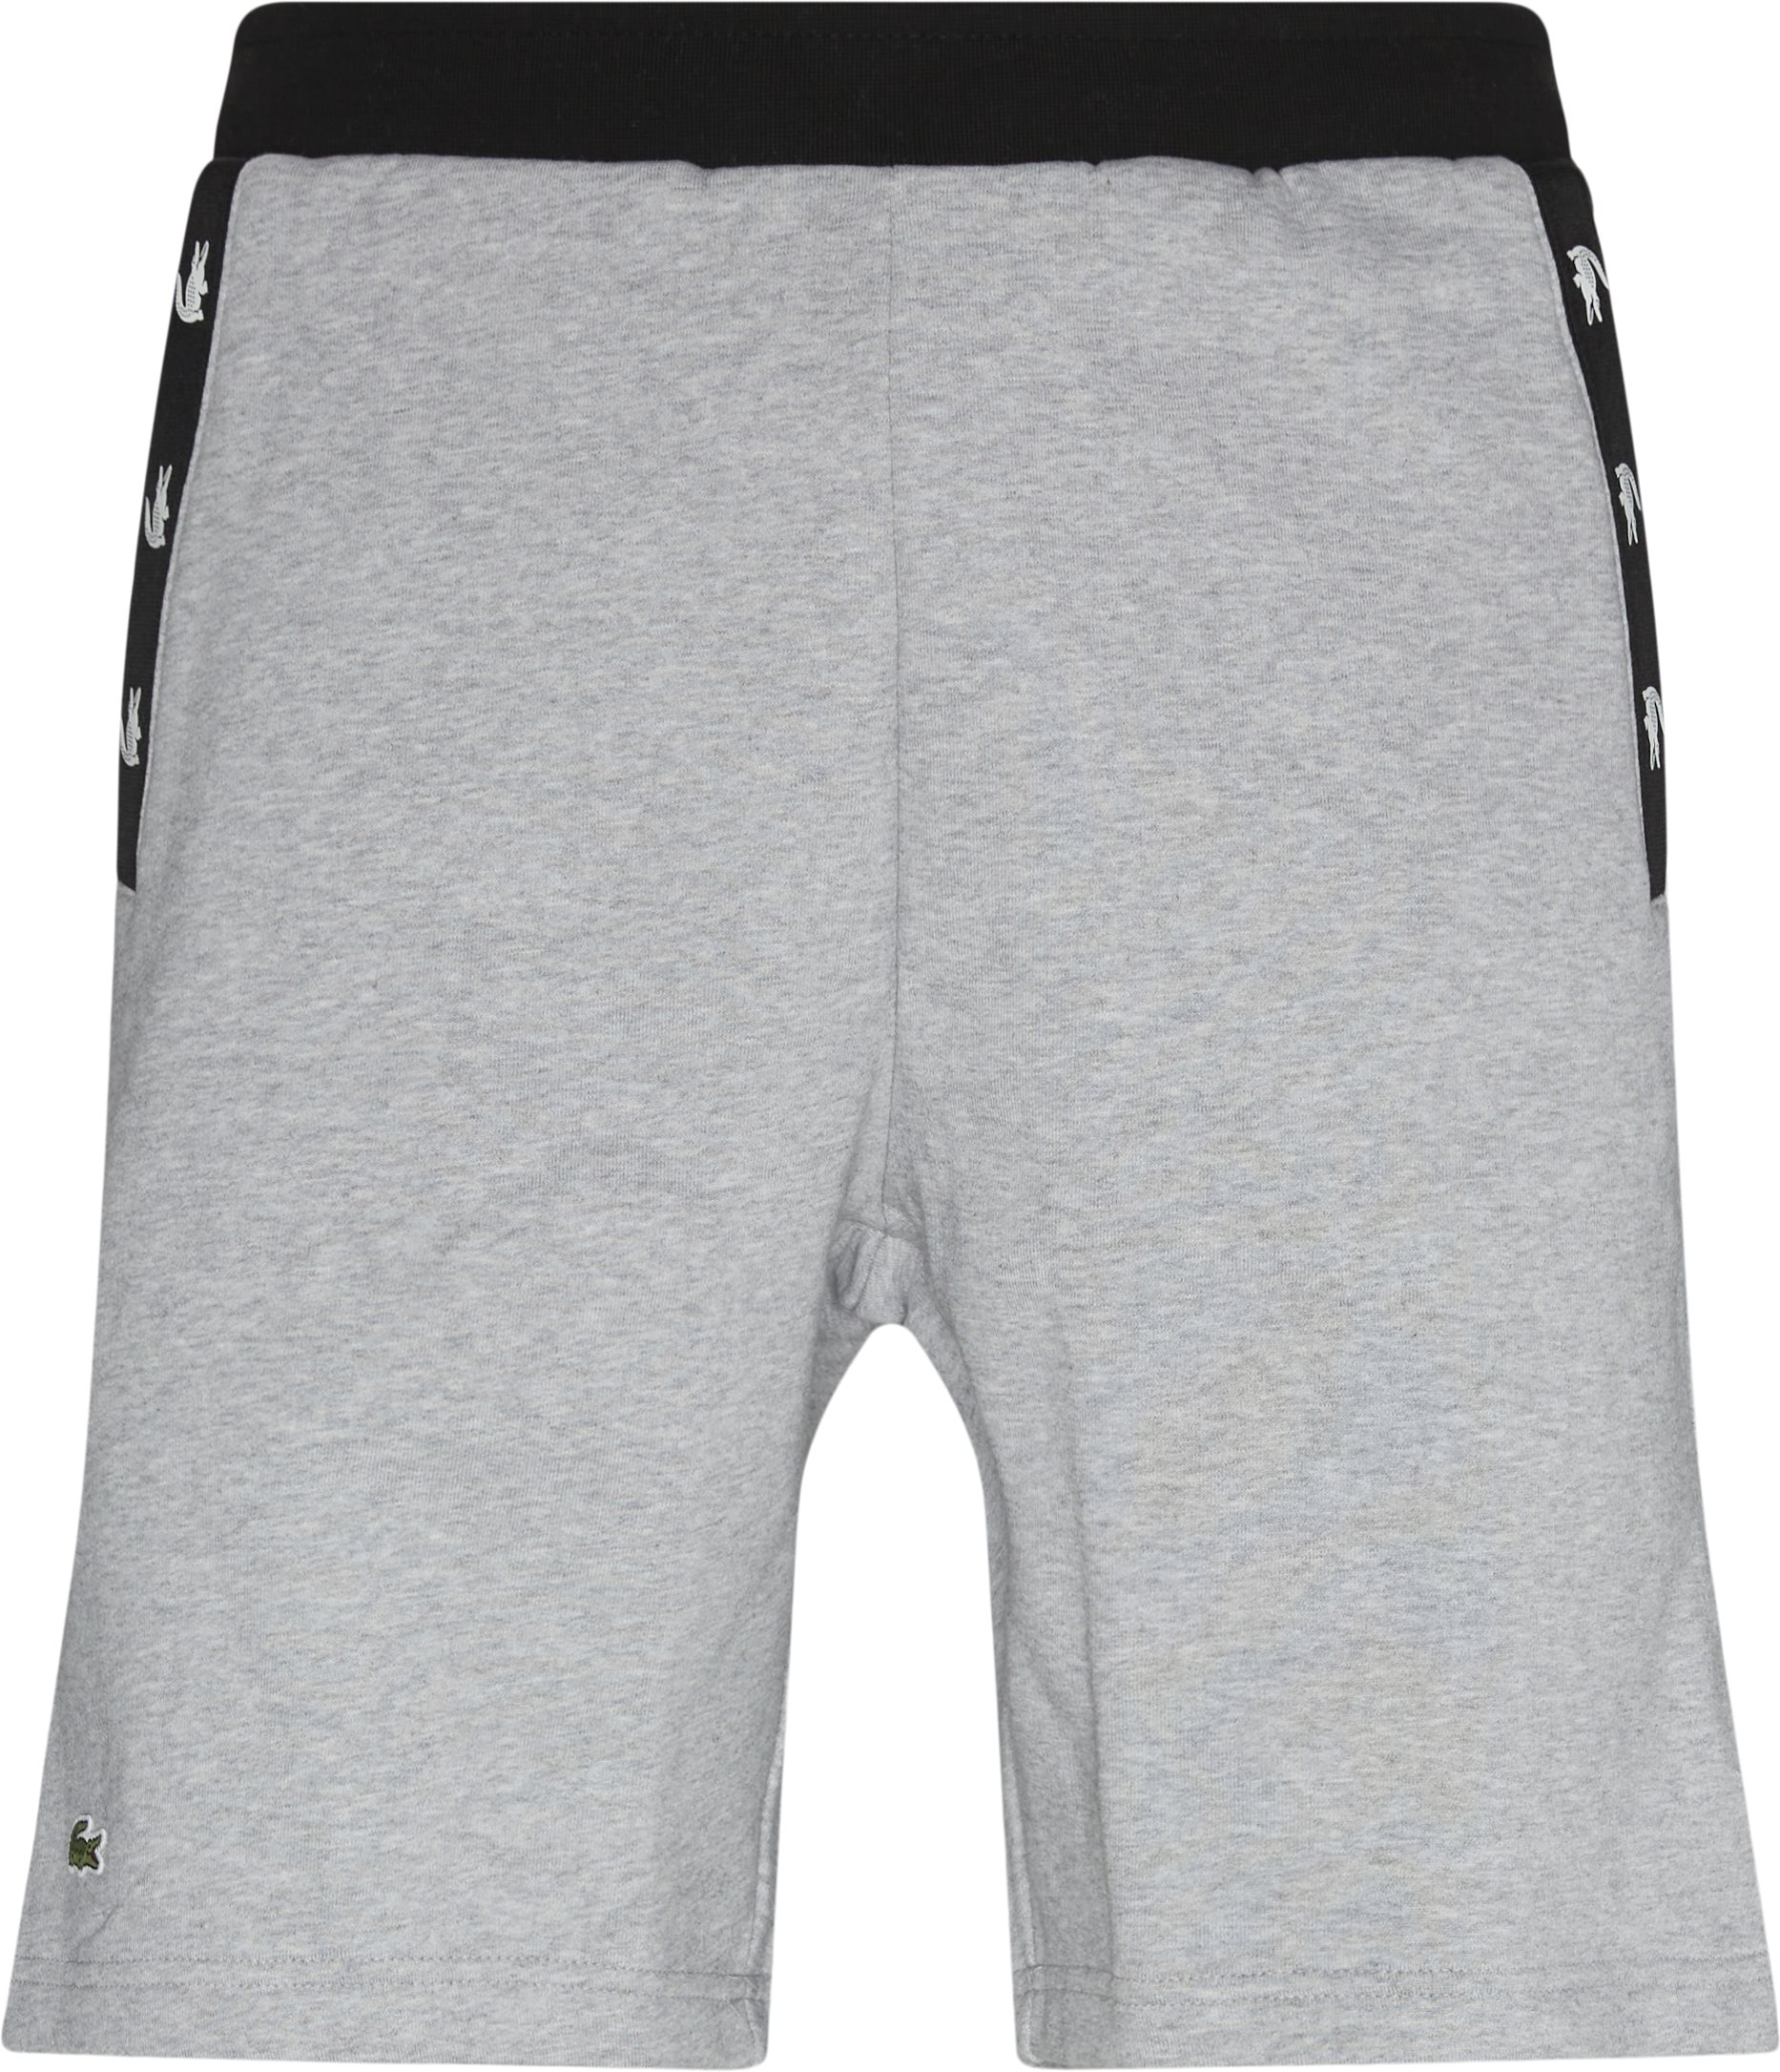 Shorts - Relaxed fit - Grey